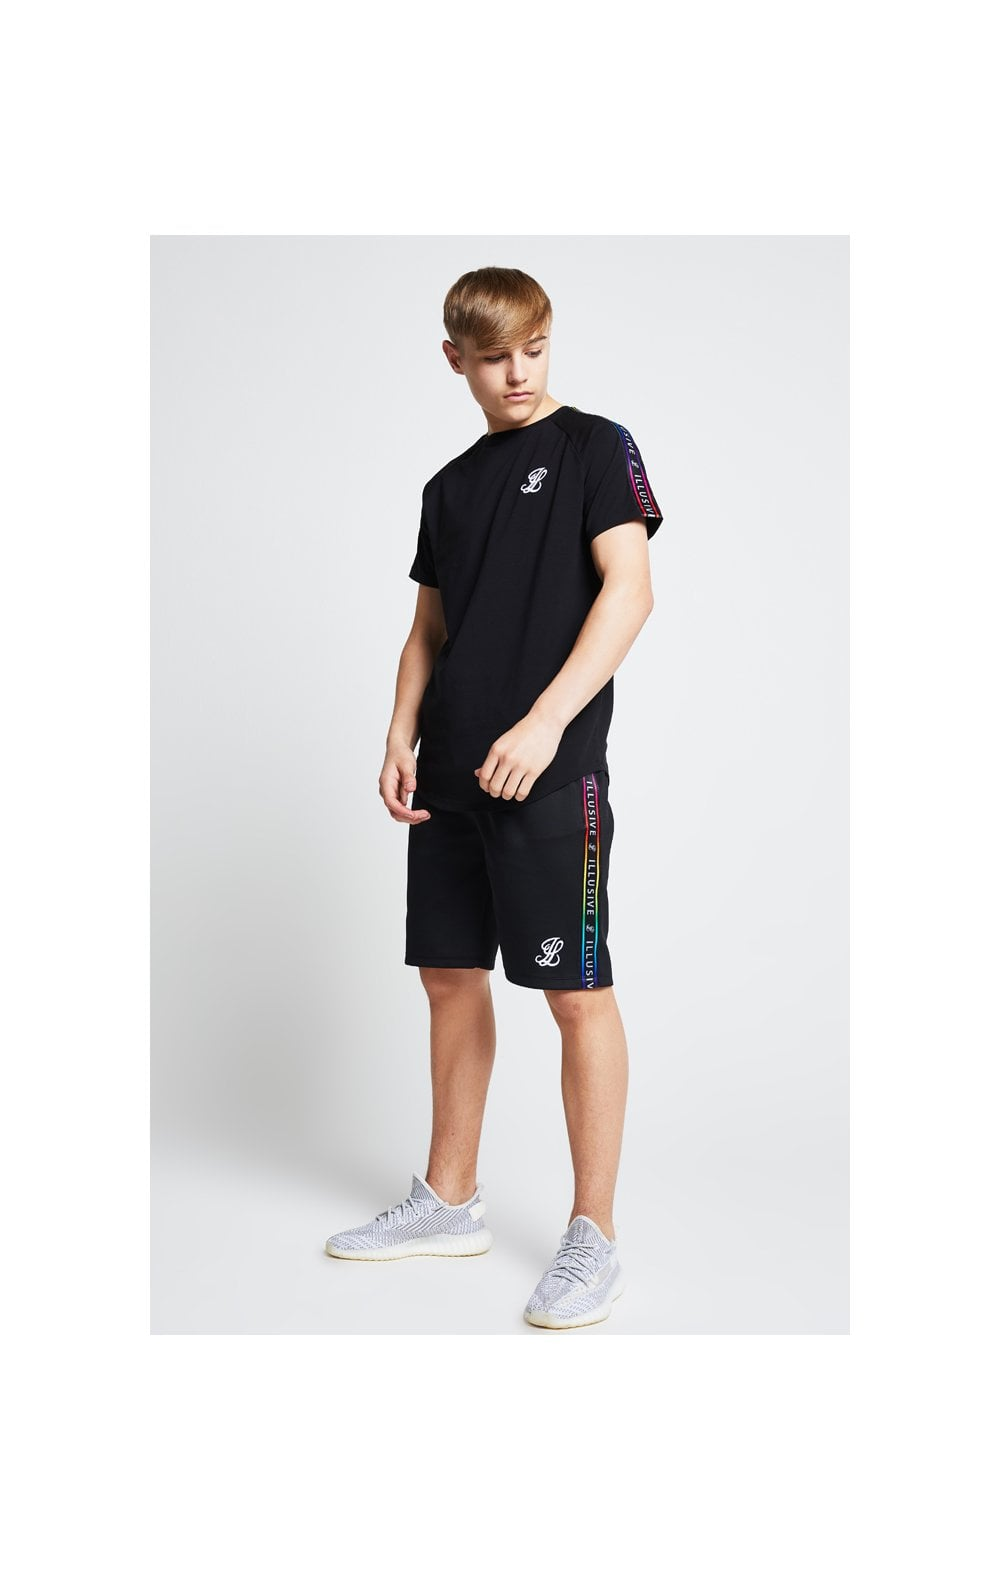 Illusive London Tape Jersey Shorts - Black (4)